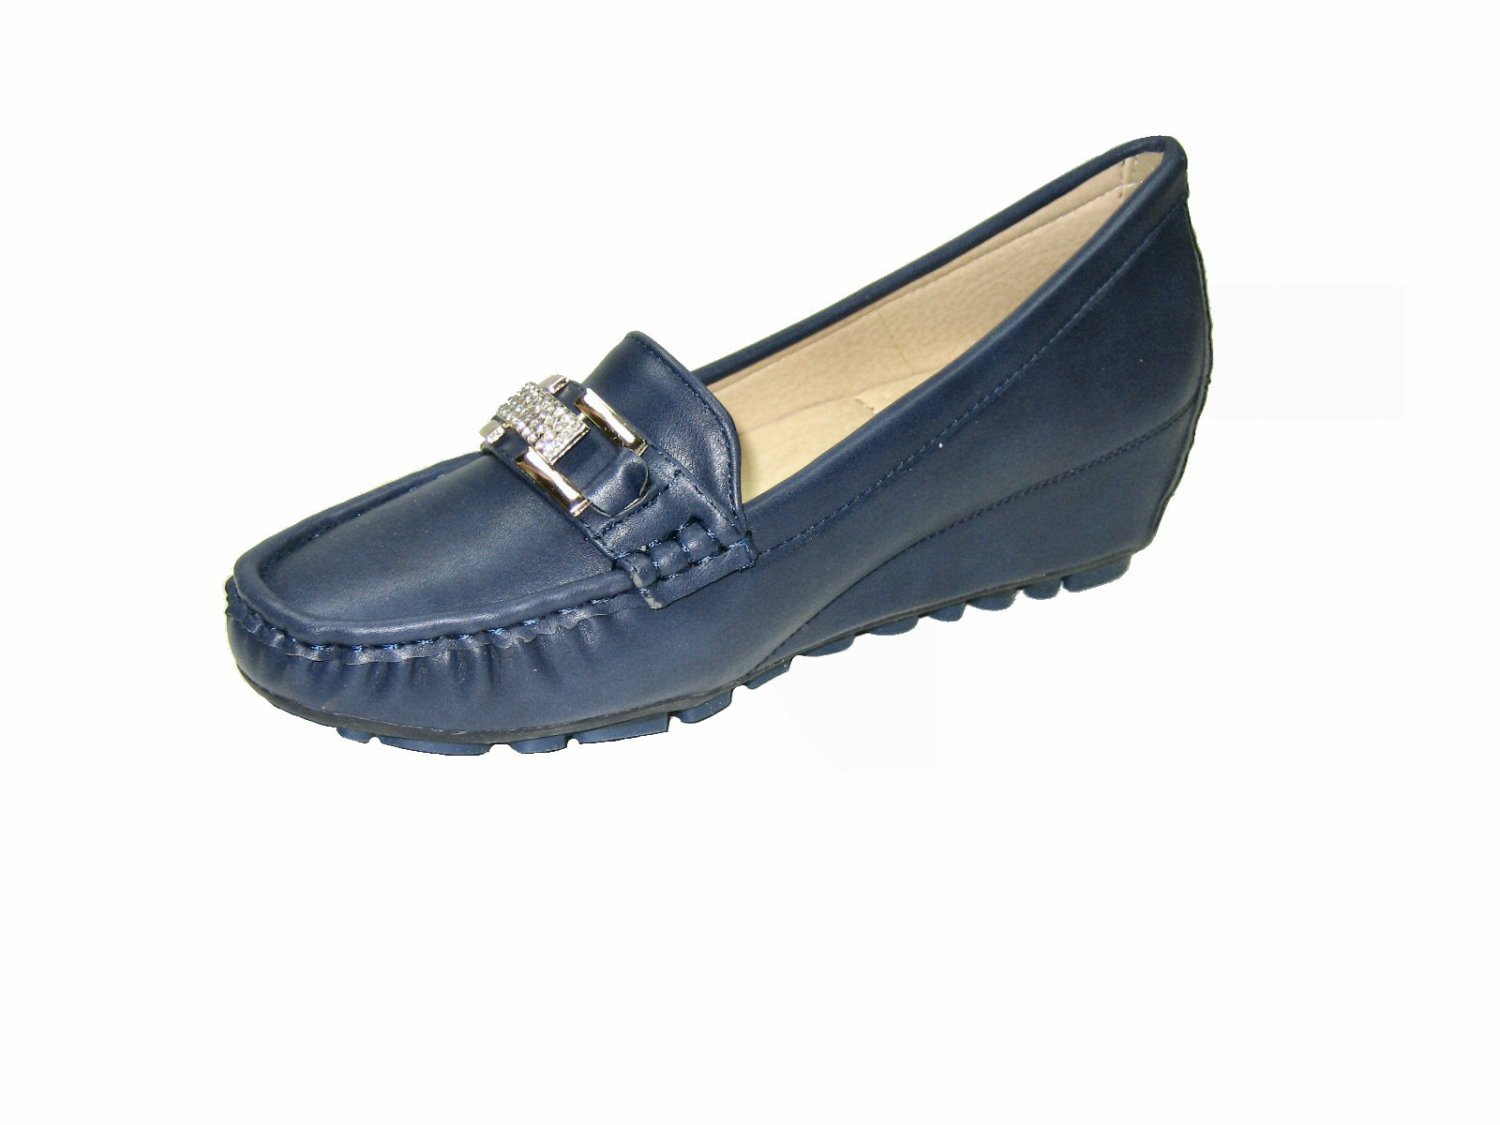 Nature Breeze SouthBay-2p 2 inch wedge heel comfort loafer rhinestone pumps shoe navy size 7.5